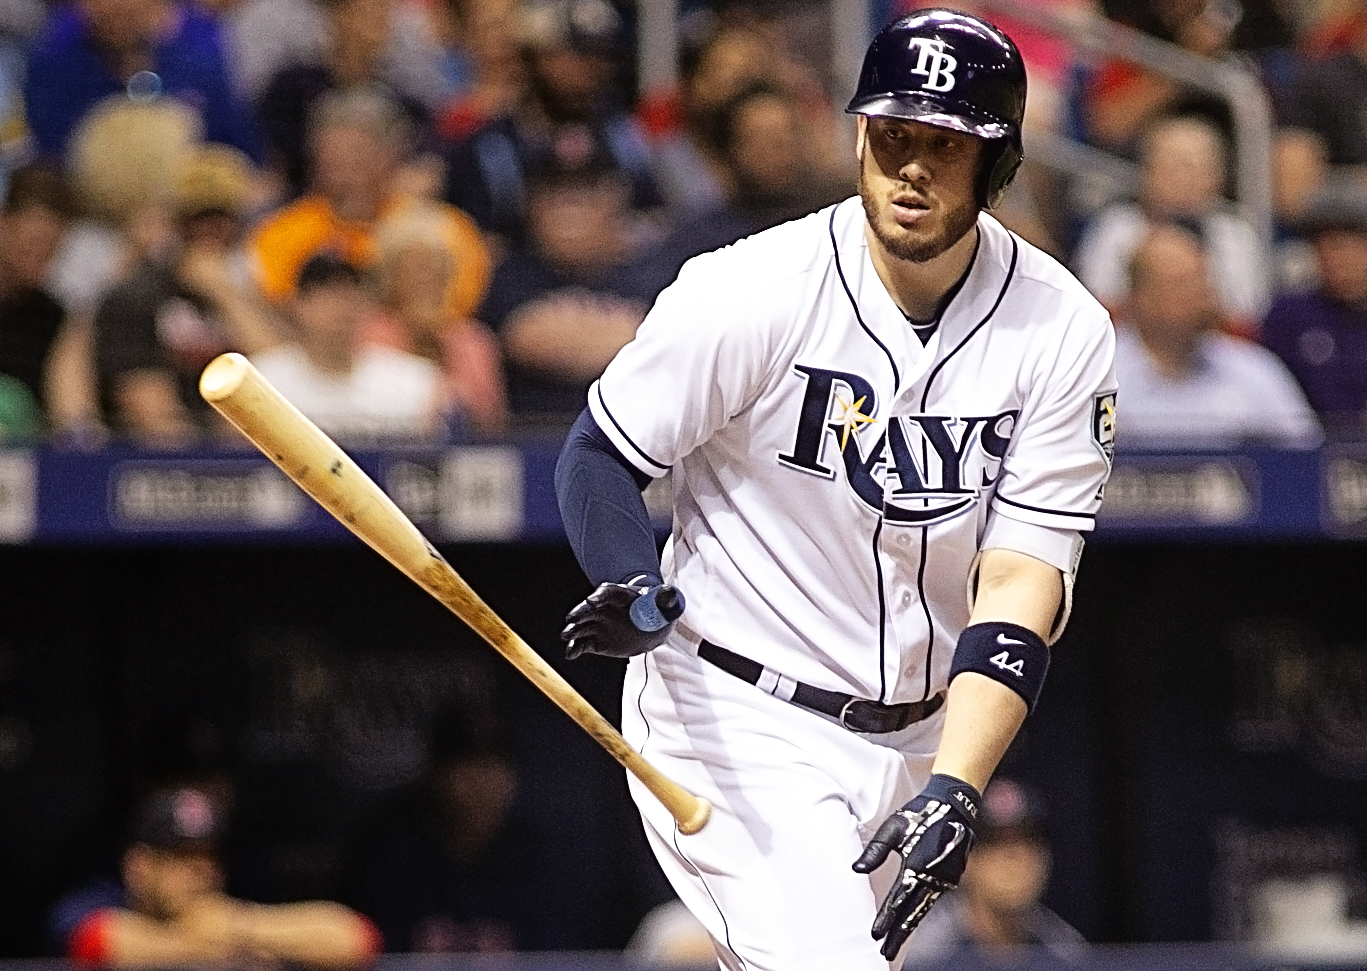 Cron tied the game with a ninth-inning double./CARMEN MANDATO